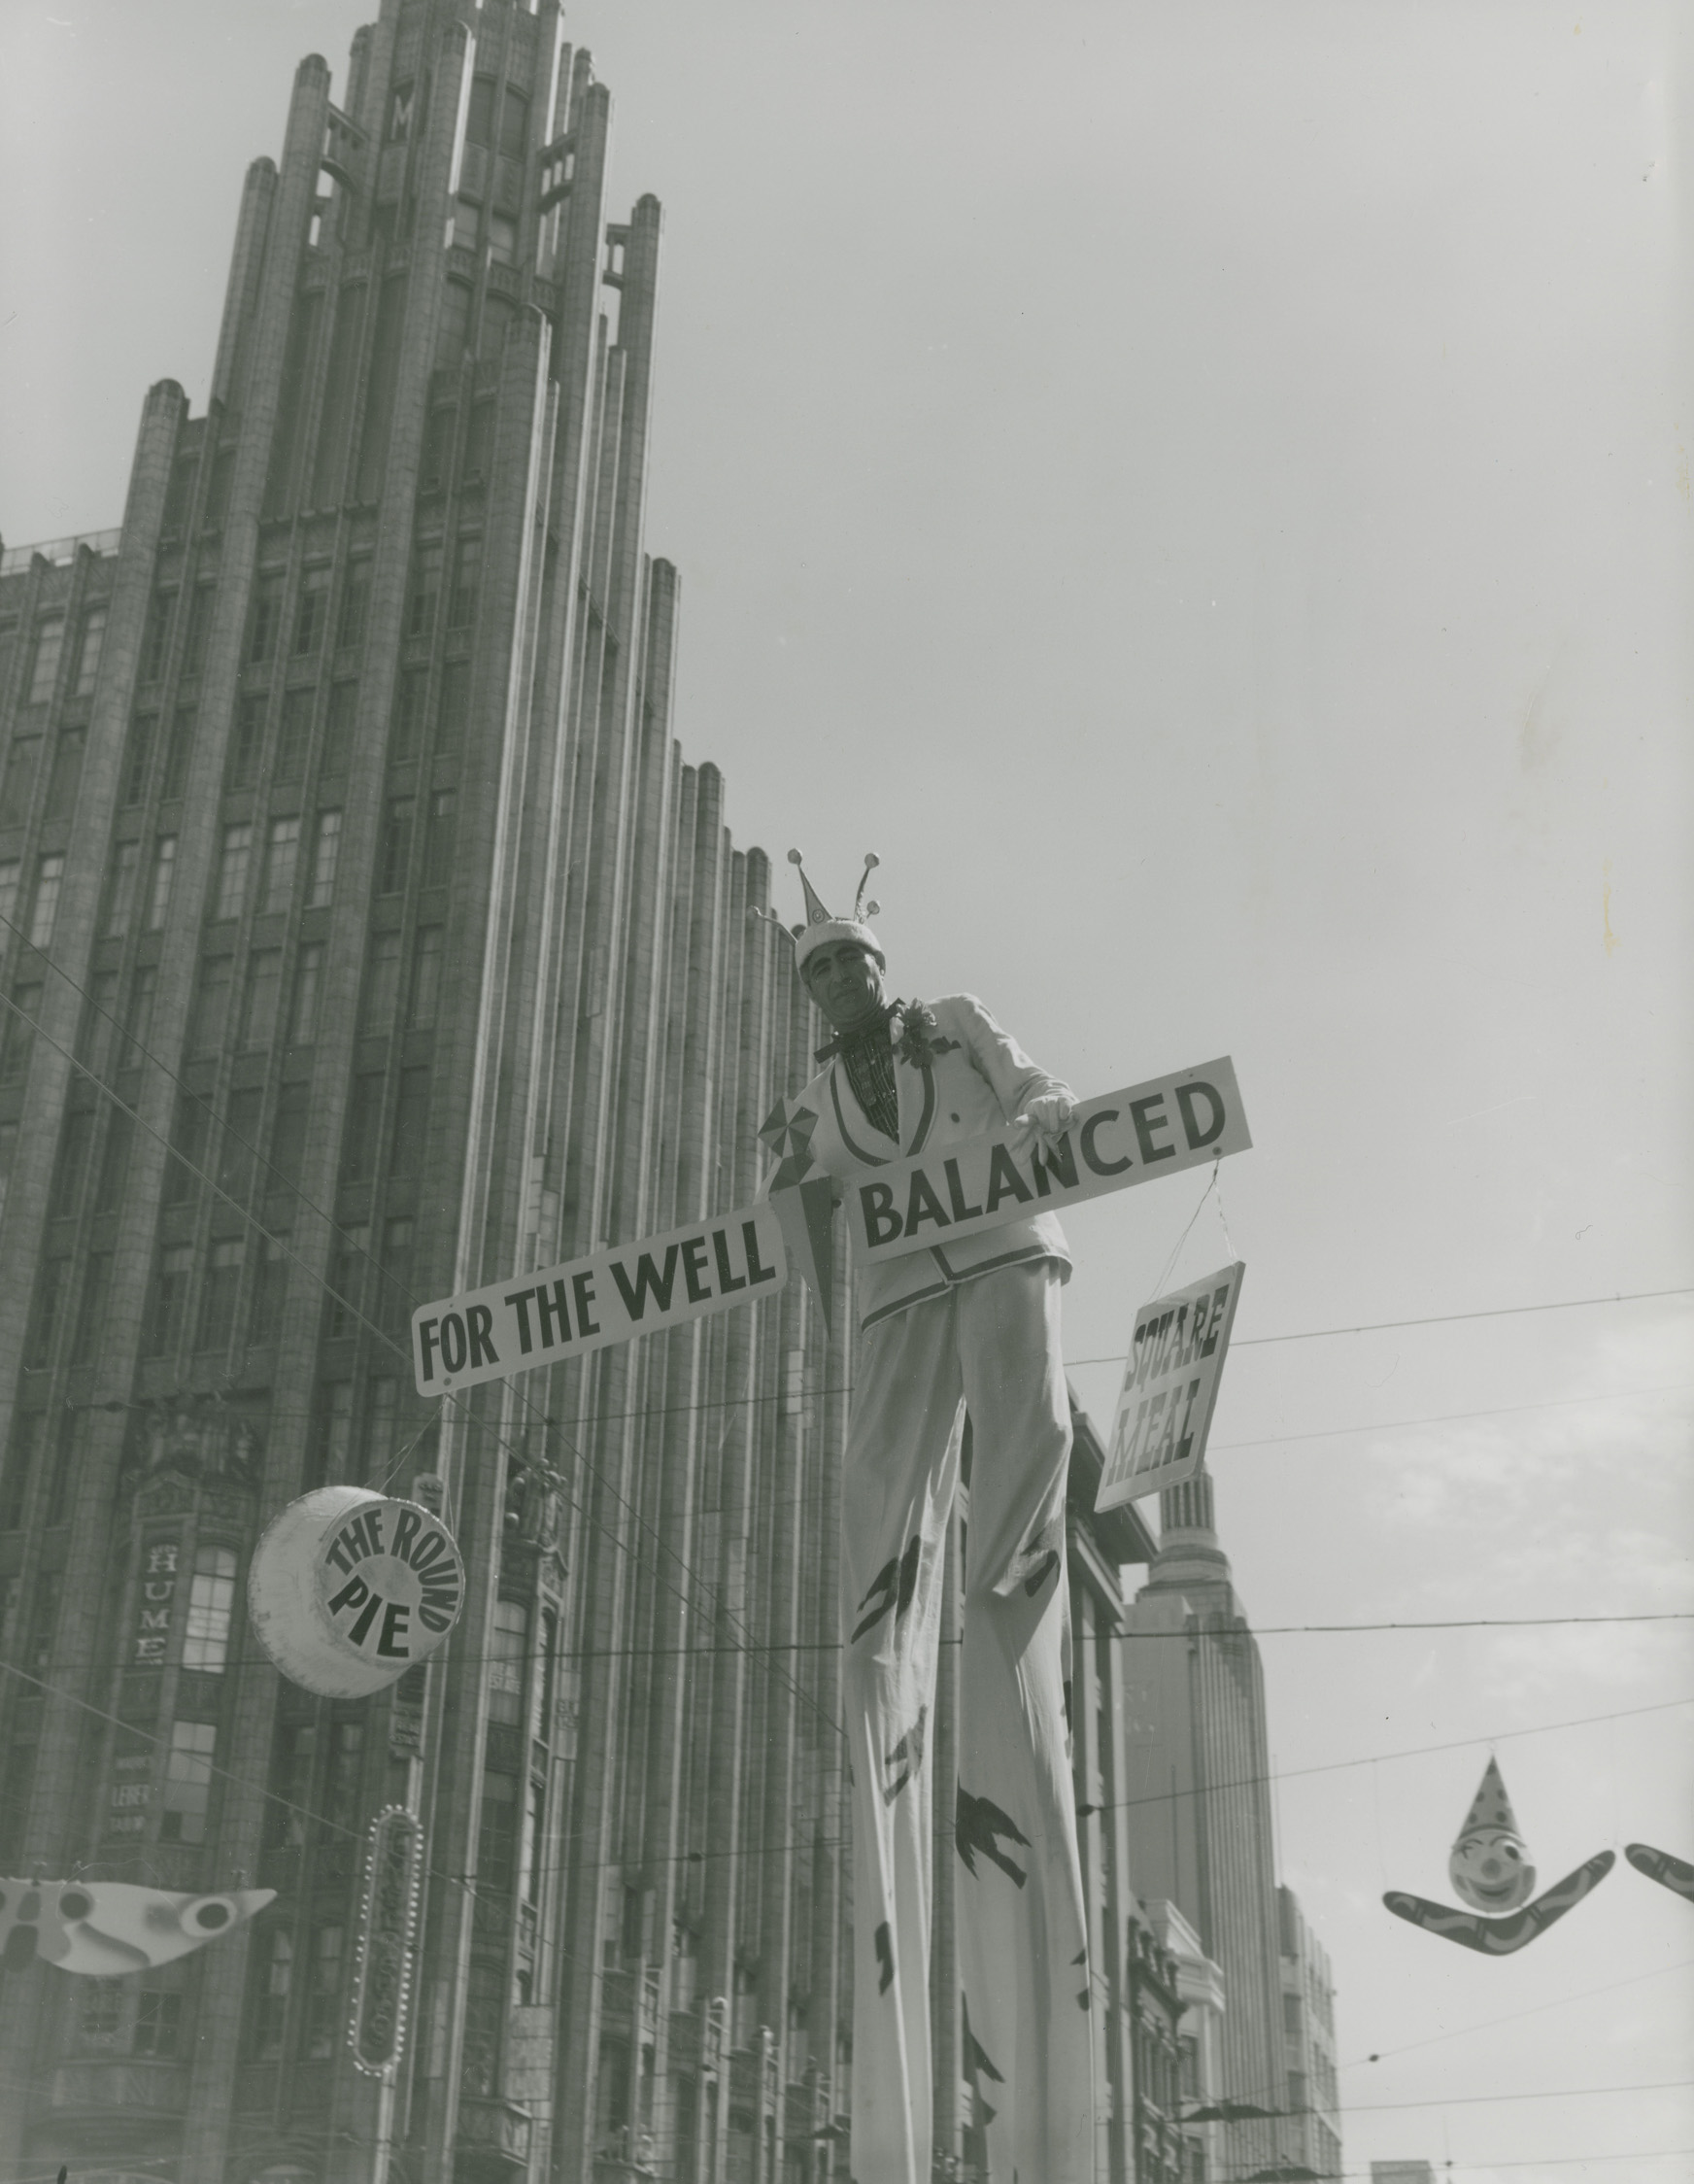 a man on stilts holding a sign that says 'for the well balanced'